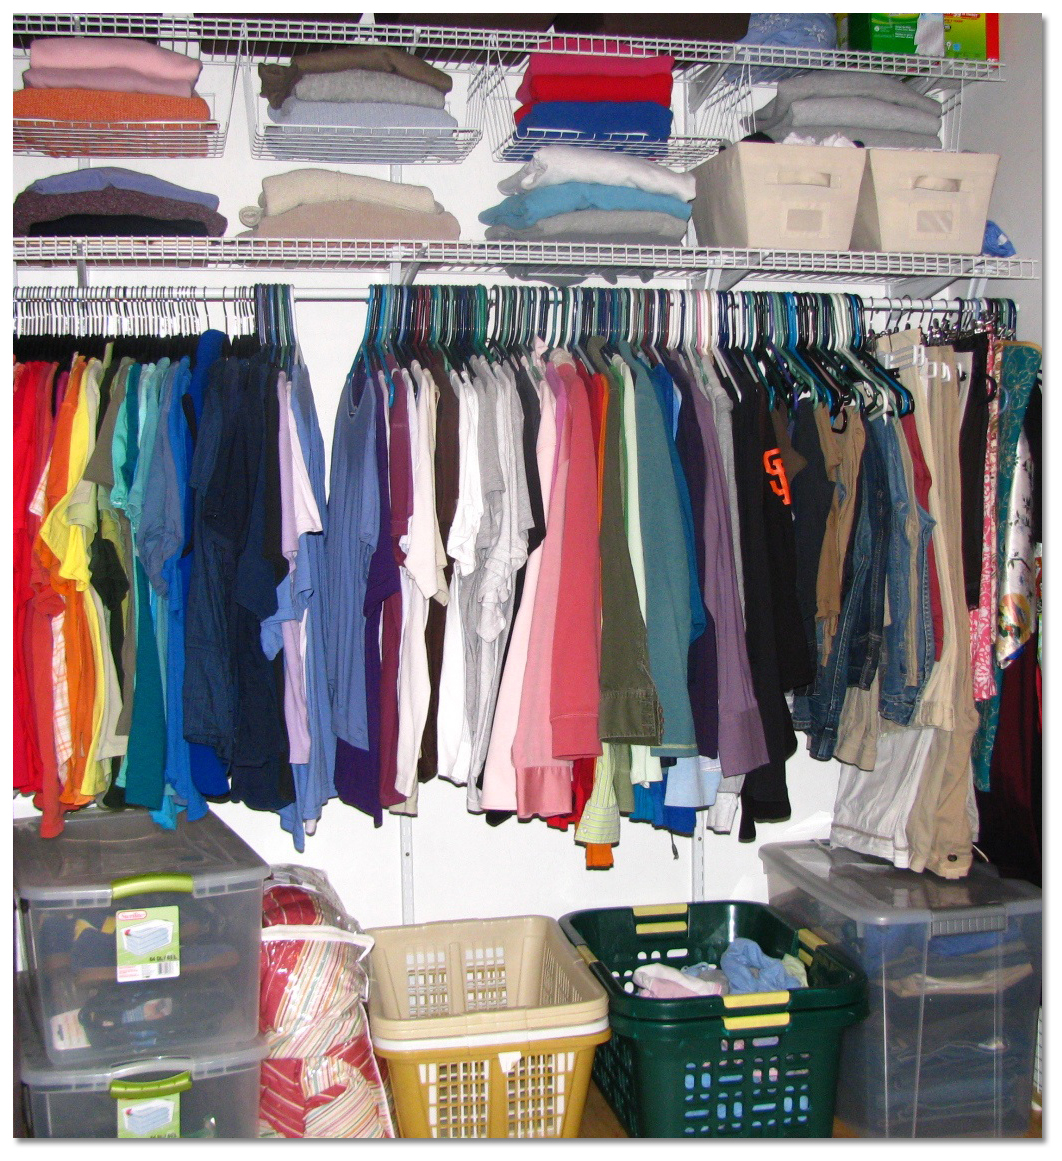 organized bedroom closet. How to organize bedroom closet   Interior Designing Ideas